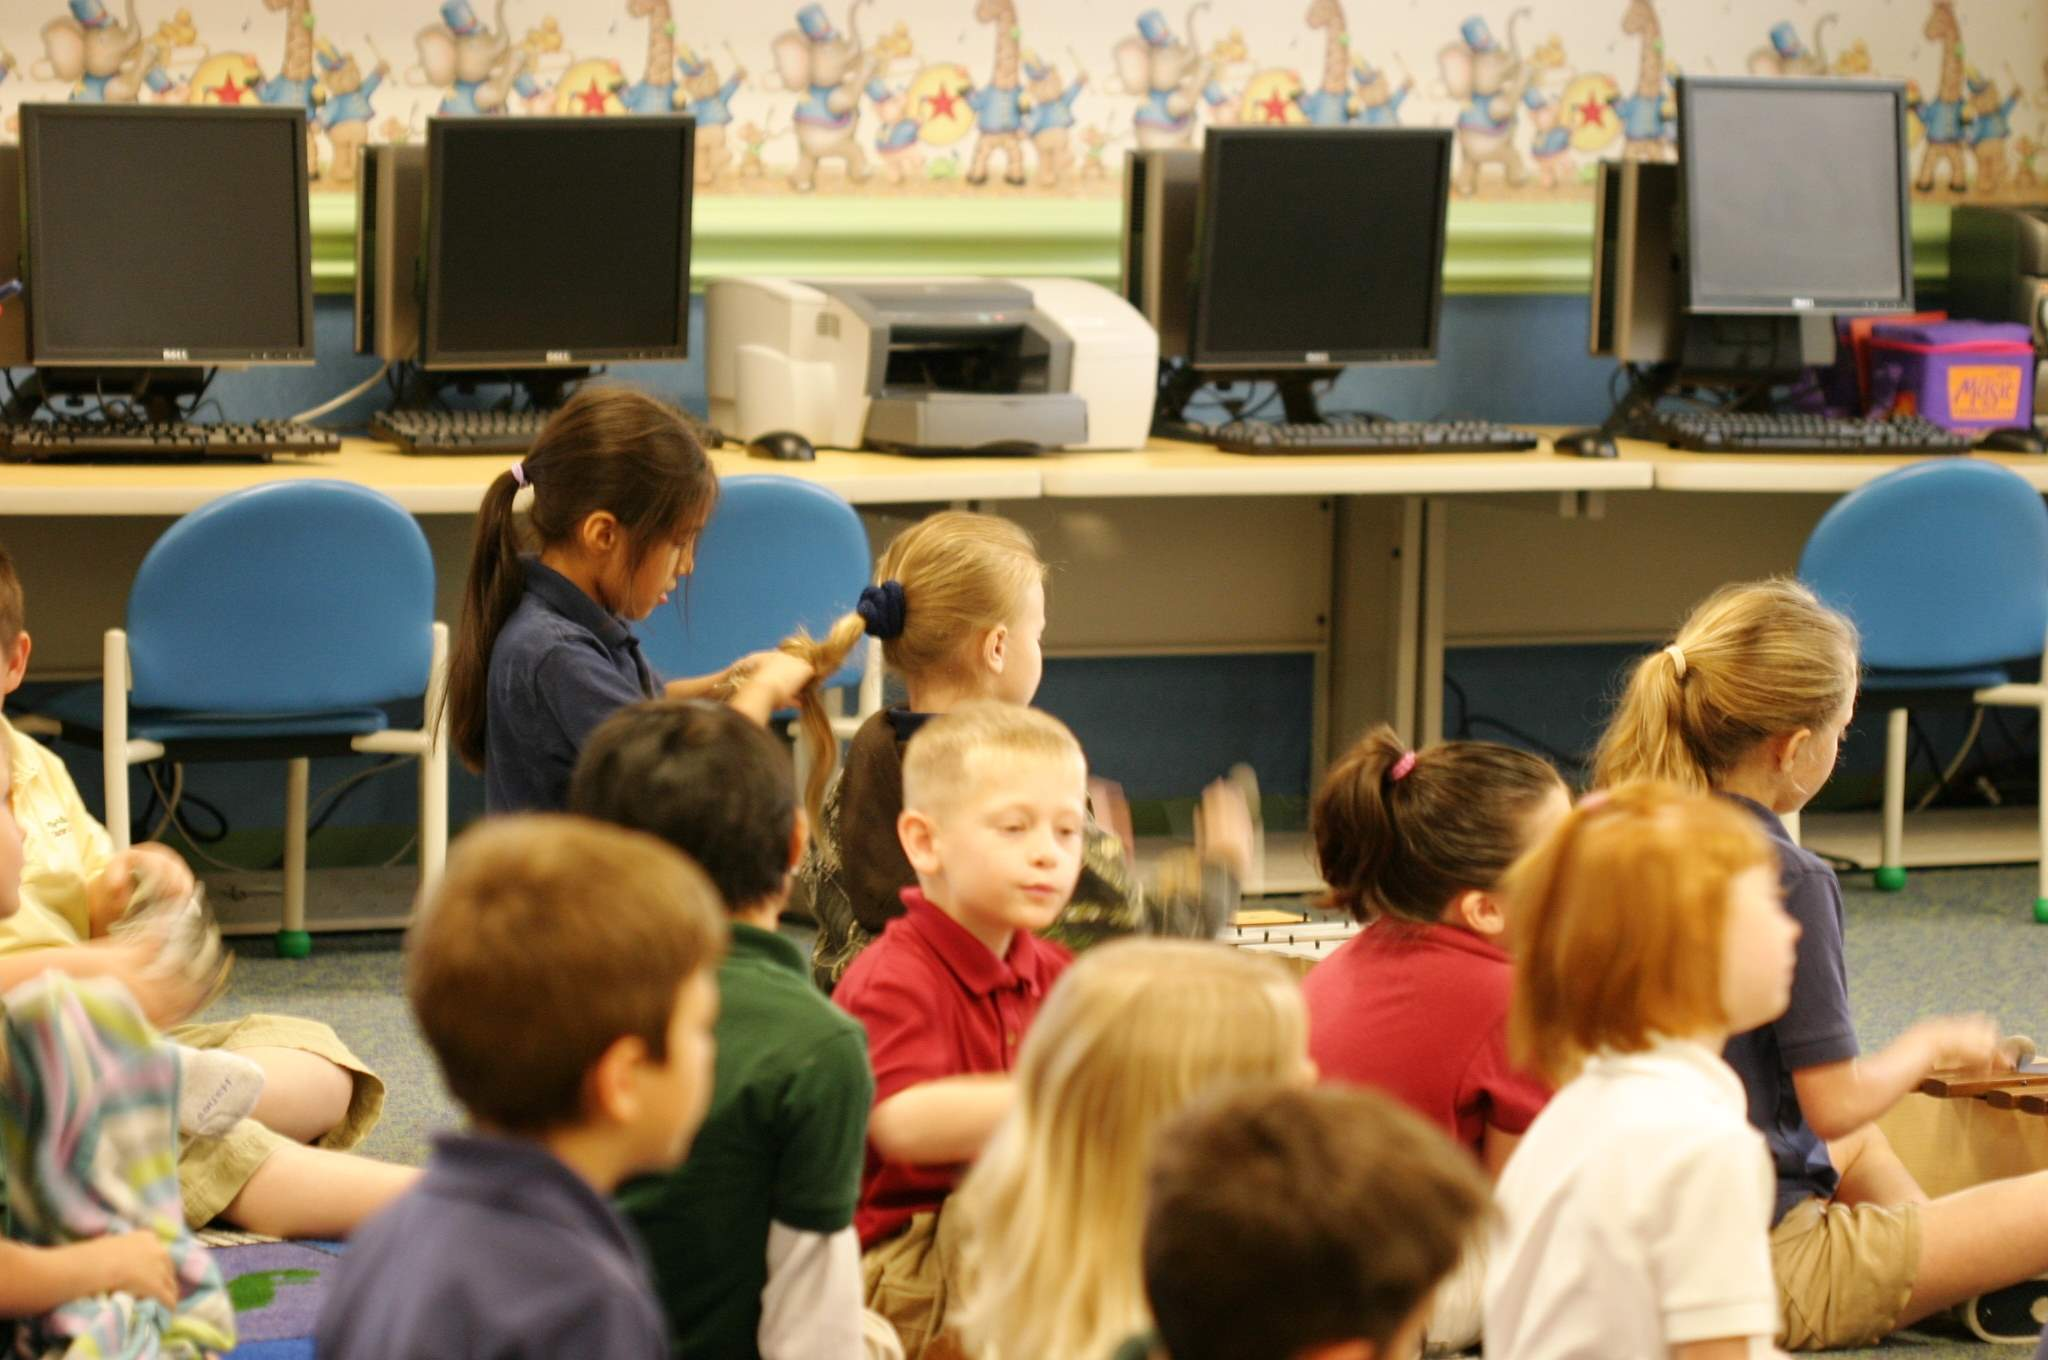 Primary Center image 11 of 15